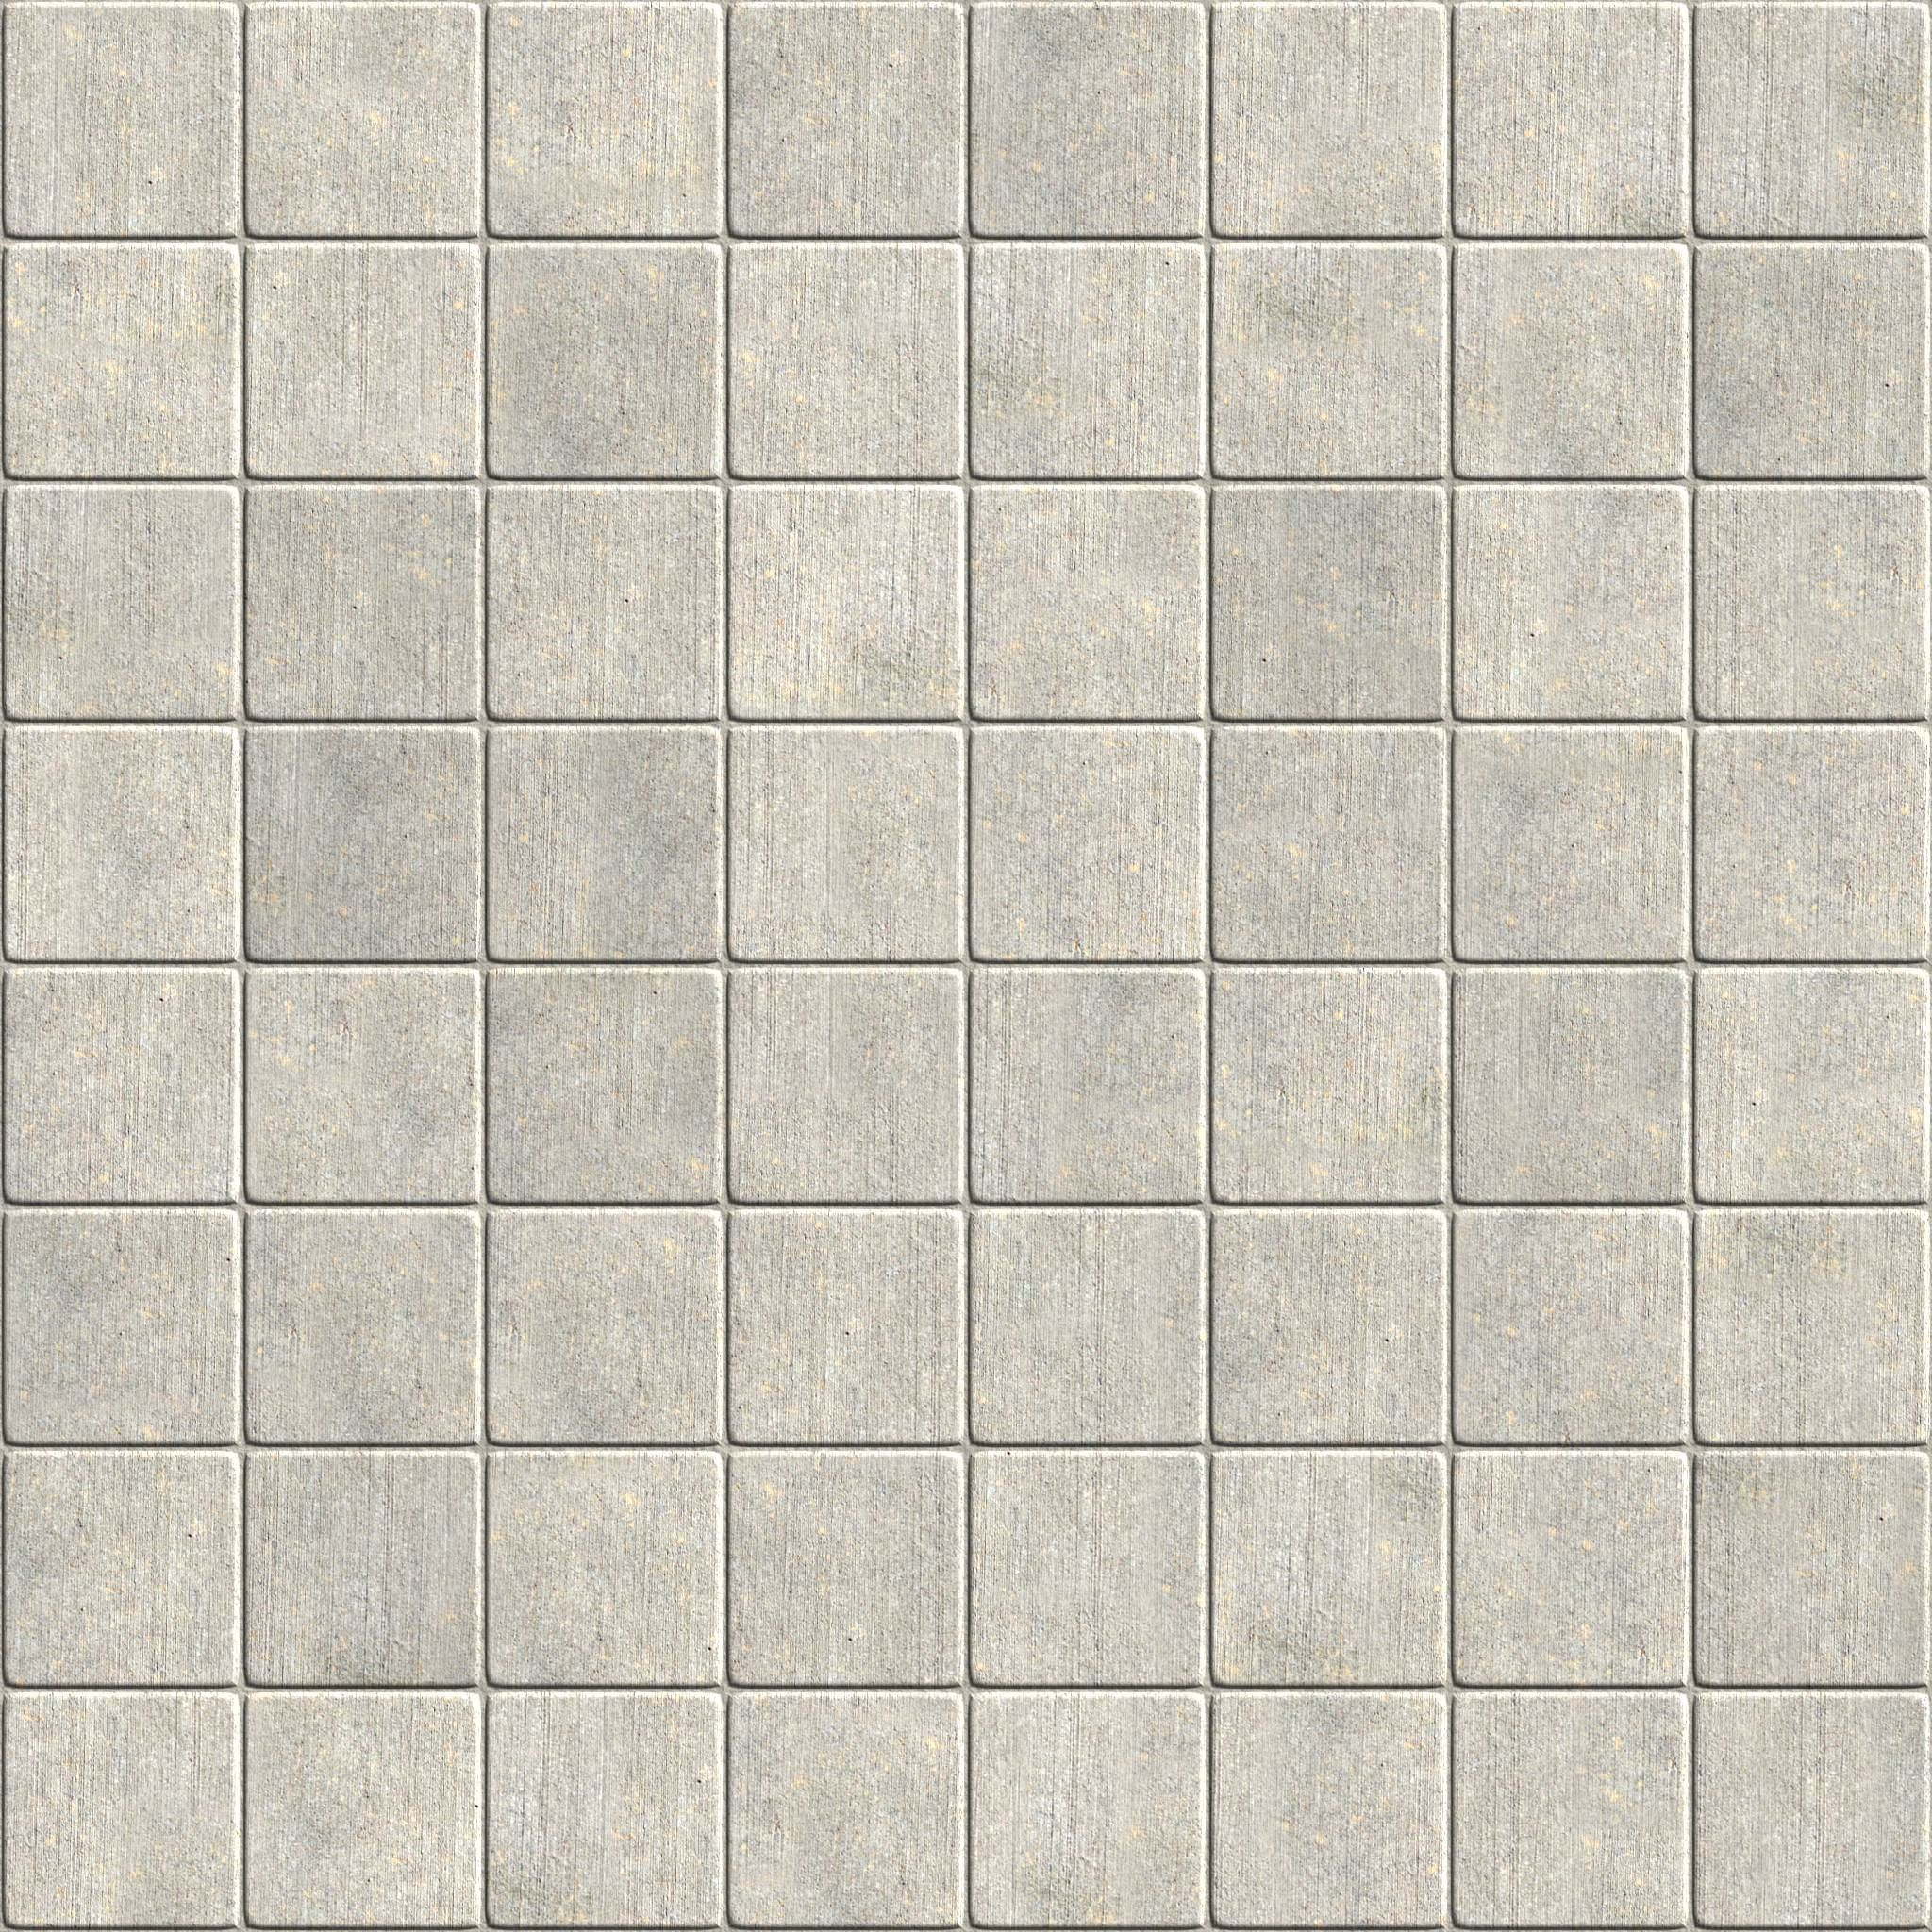 26106d1348103059 Camoflage Seamless Texture Maps Free Use Concrete Tiles 2048 2048